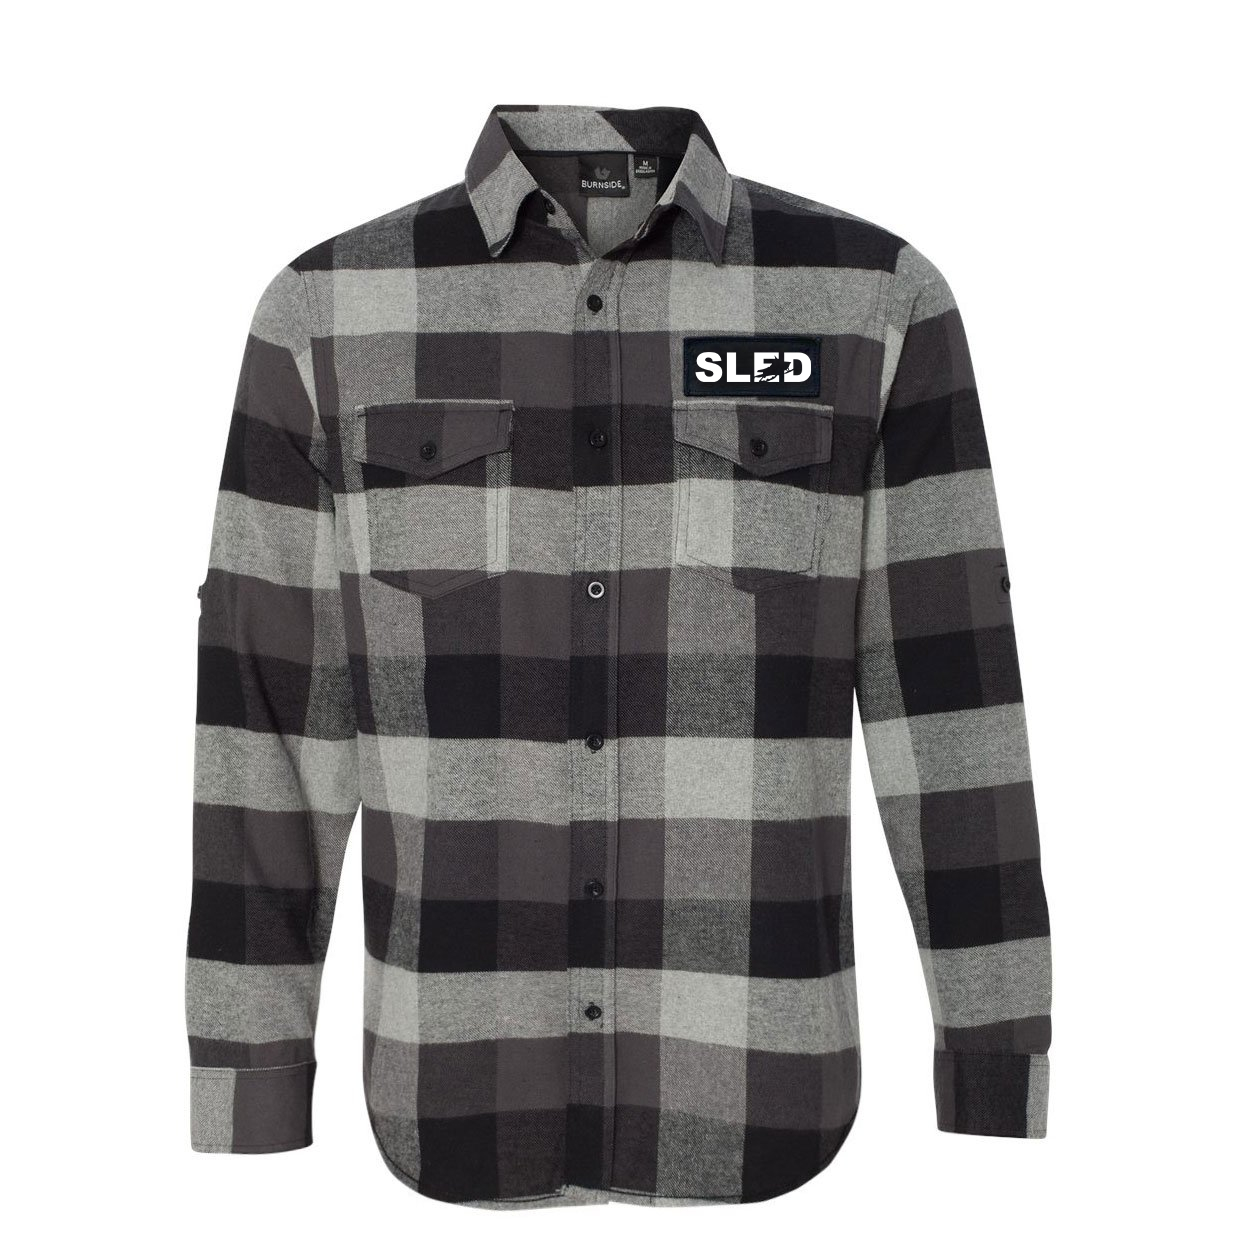 Sled Snowmobile Logo Classic Unisex Long Sleeve Woven Patch Flannel Shirt Black/Gray (White Logo)